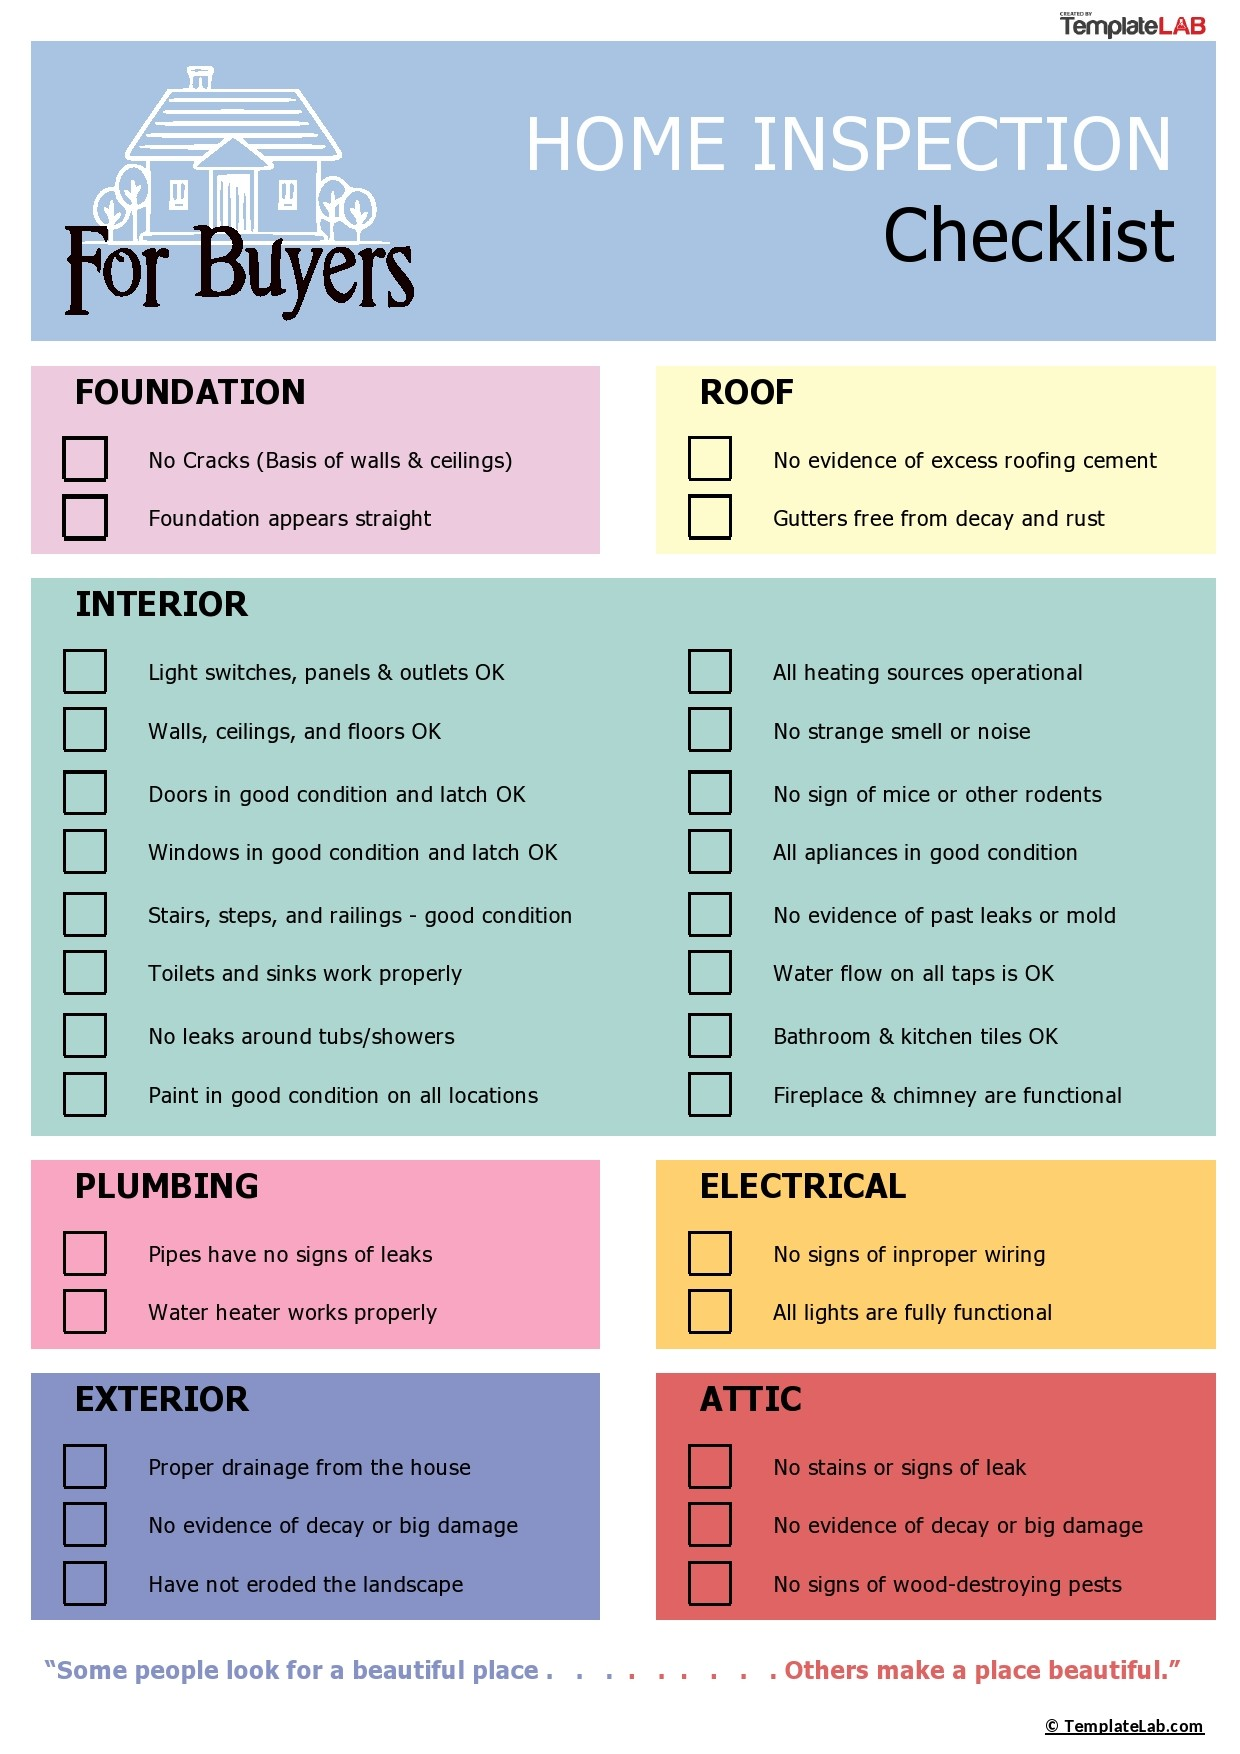 Free Home Inspection Checklist for Buyers - TemplateLab.com